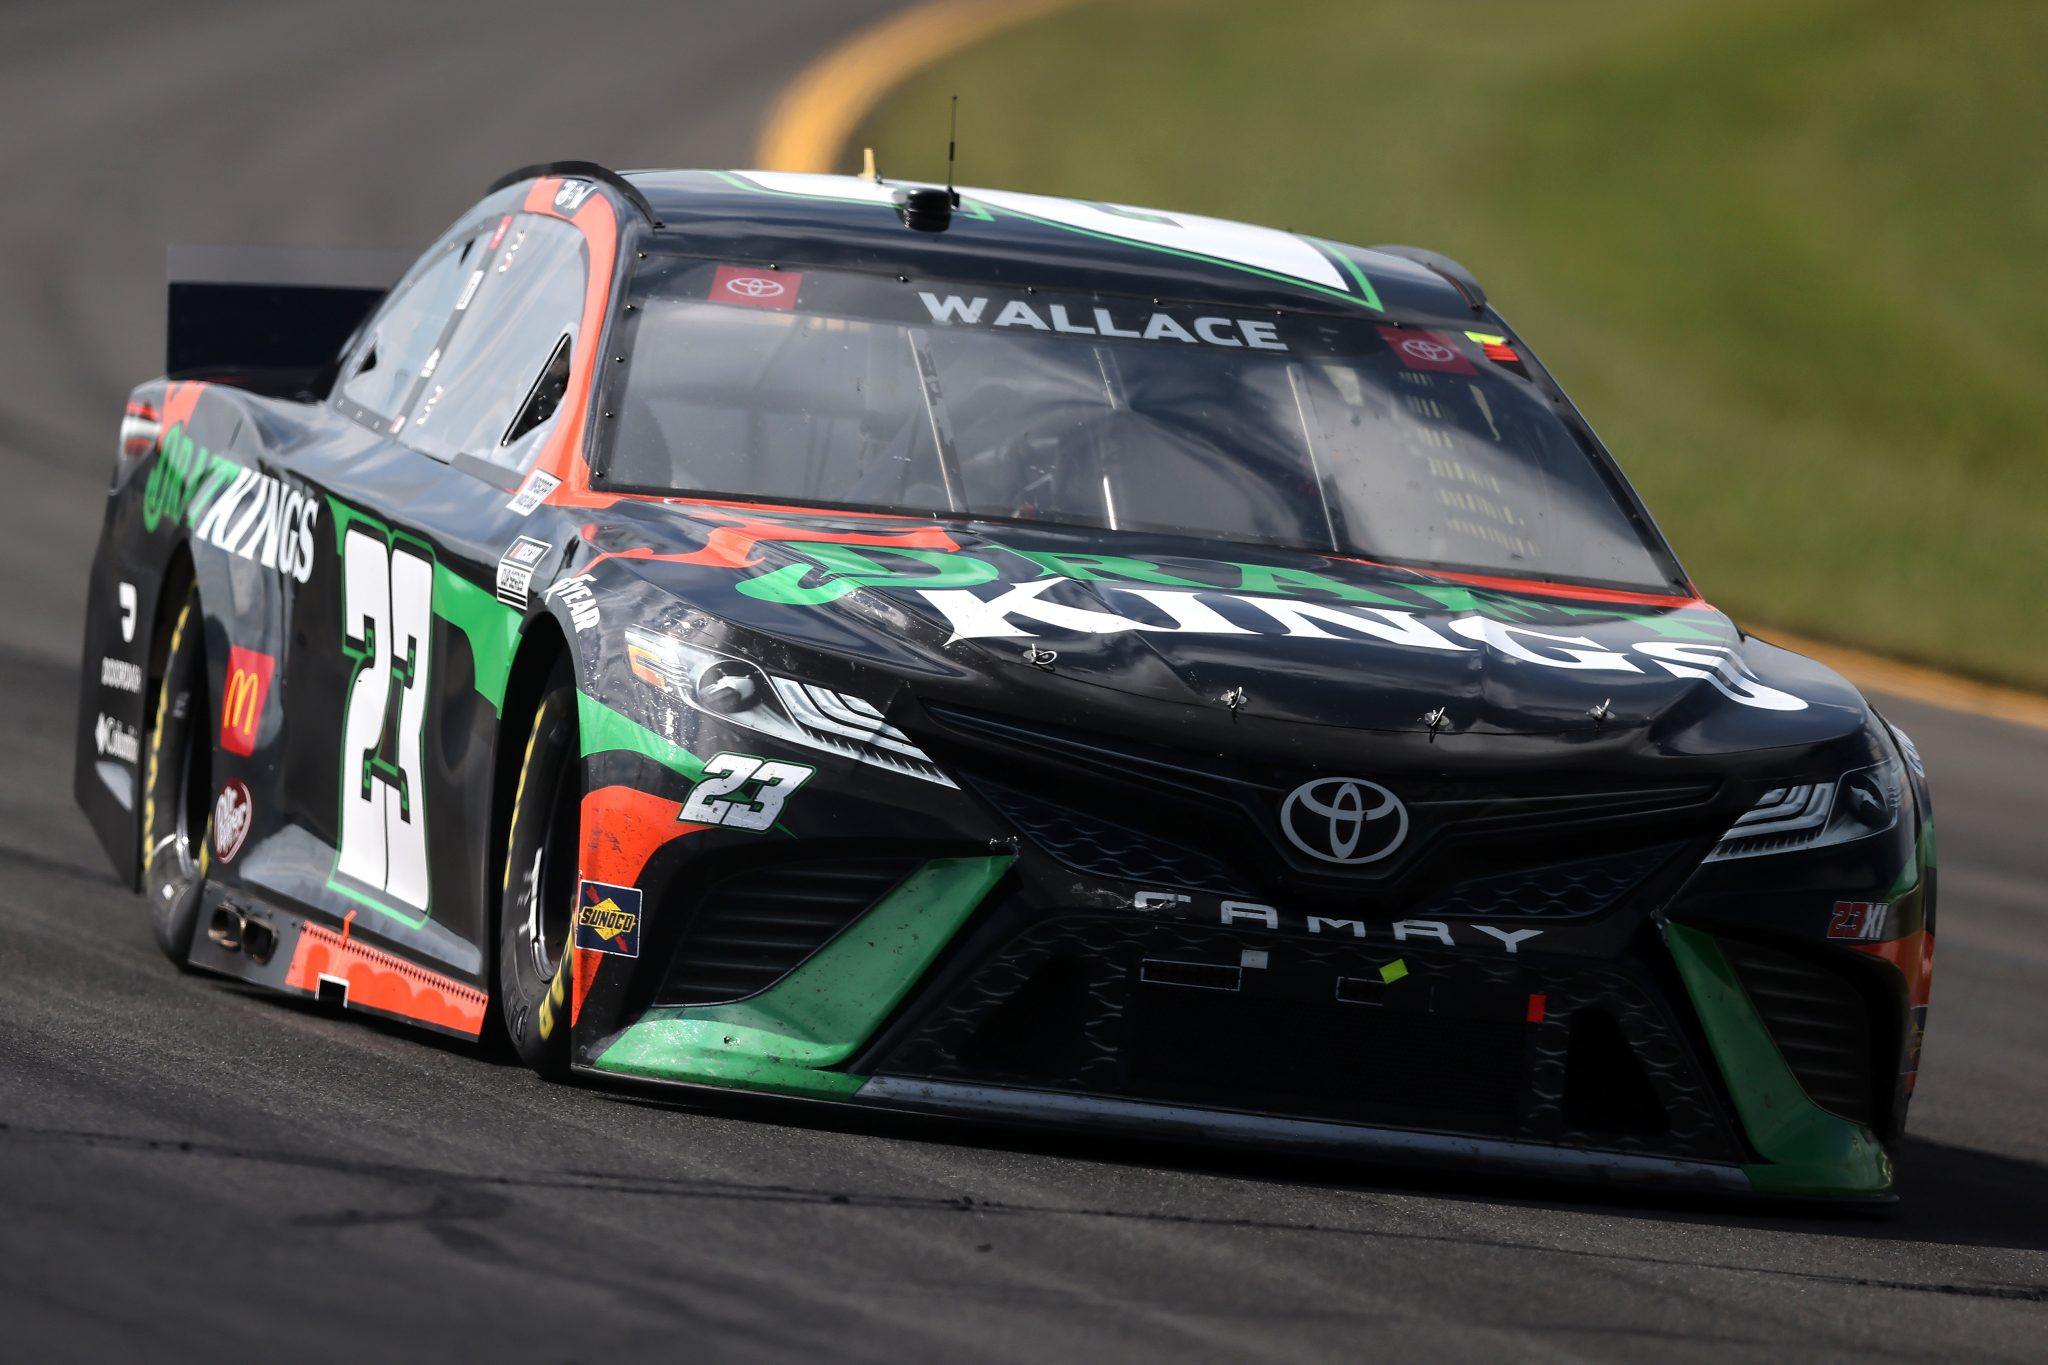 LONG POND, PENNSYLVANIA - JUNE 27: Bubba Wallace, driver of the #23 DraftKings Toyota, drives during the NASCAR Cup Series Explore the Pocono Mountains 350 at Pocono Raceway on June 27, 2021 in Long Pond, Pennsylvania. (Photo by James Gilbert/Getty Images) | Getty Images